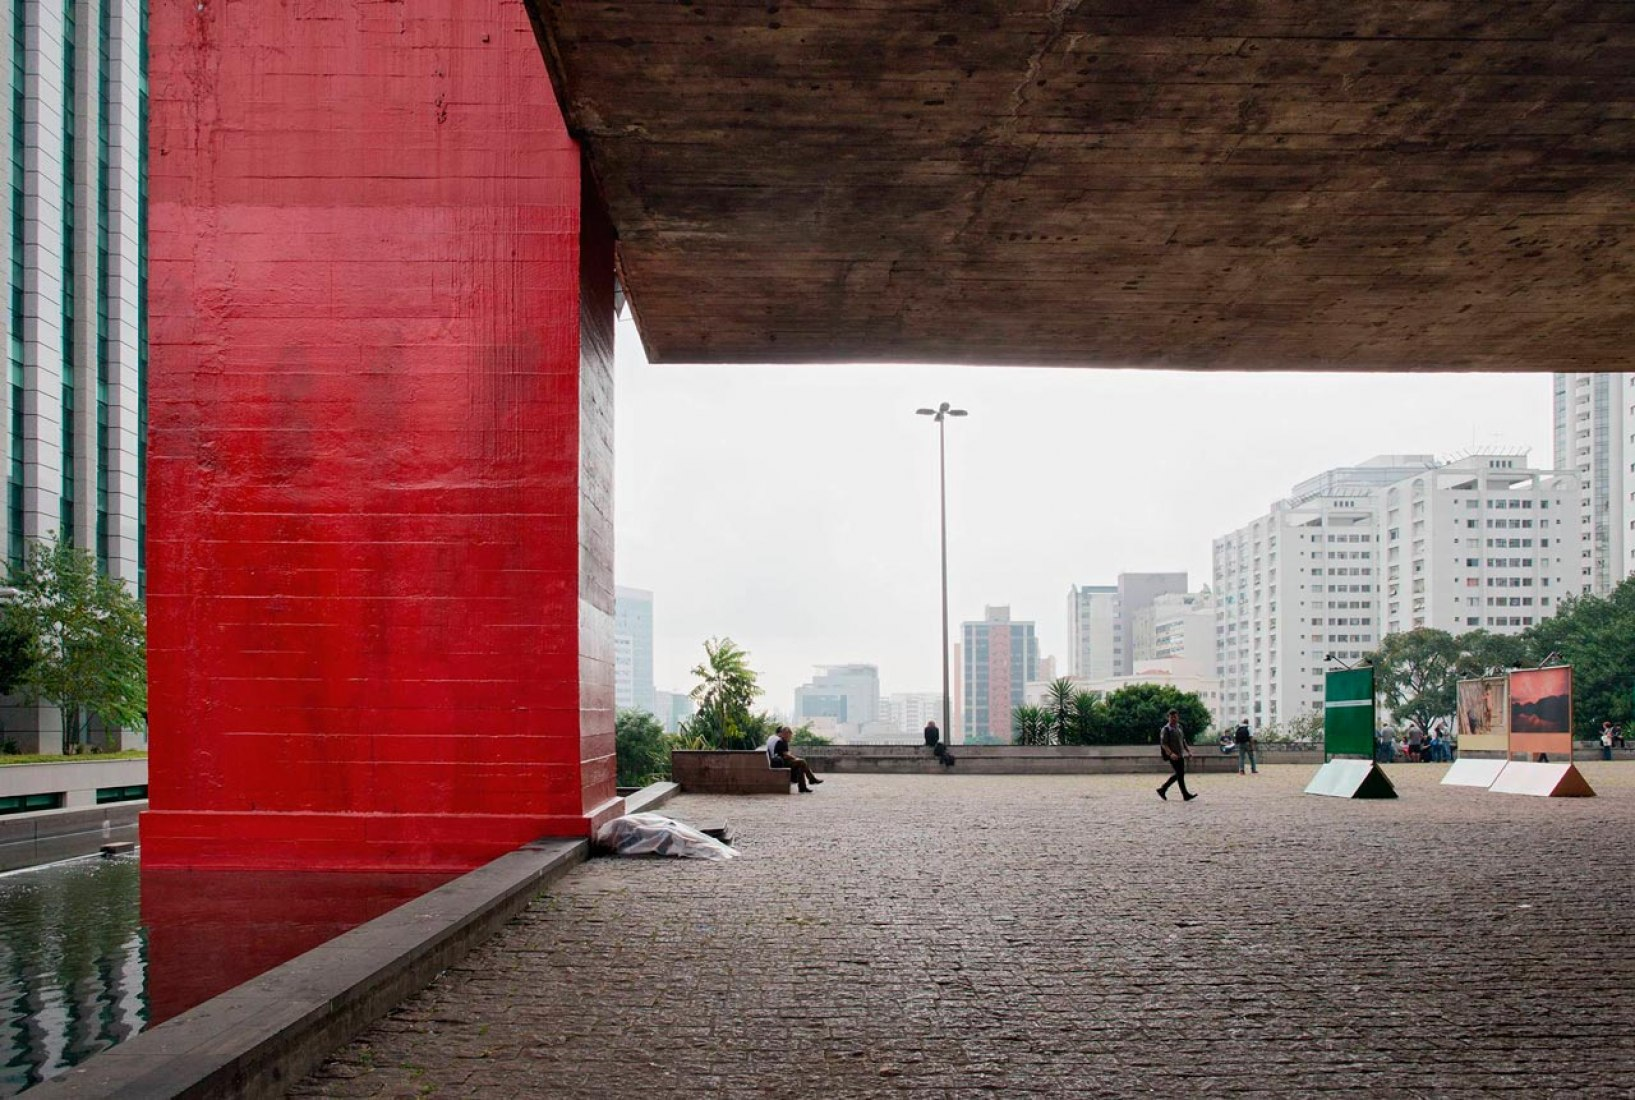 MASP – Museu de Arte de São Paulo, São Paulo. Covered passageway under the building, overlooking the city 1957-1968. Photography © Markus Lanz, 2014.